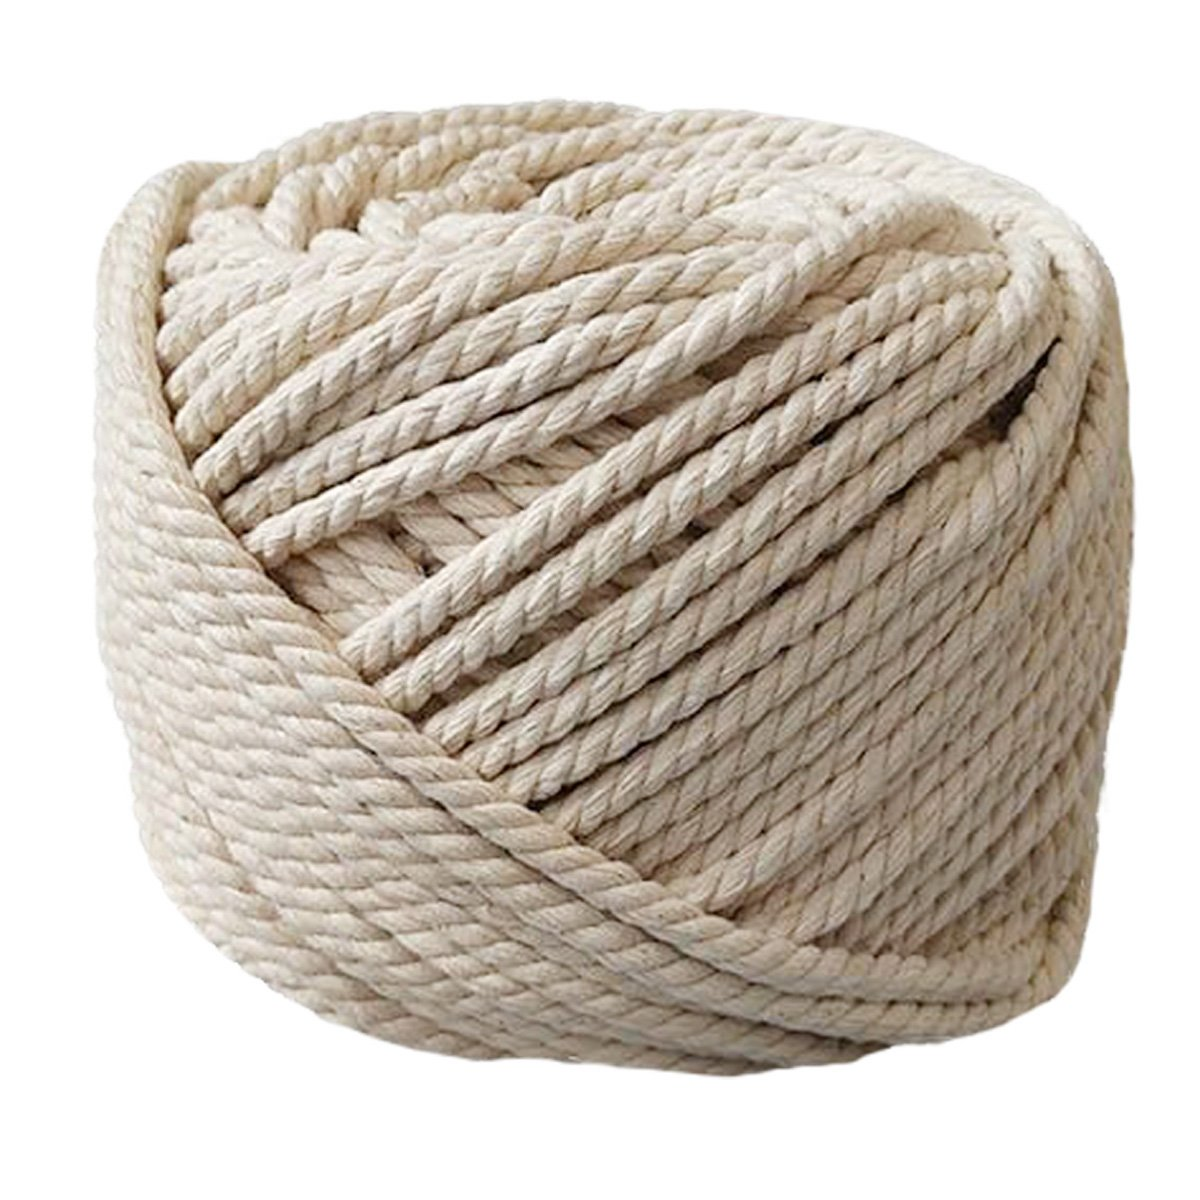 PYJTRL 100/% Natural Cotton Twisted Rope 1//12 5mm 1//6,1//5 1//5Inch x 165Feet 1//8 1//8 1//6 1//5 1//5Inch x 165Feet 5mm